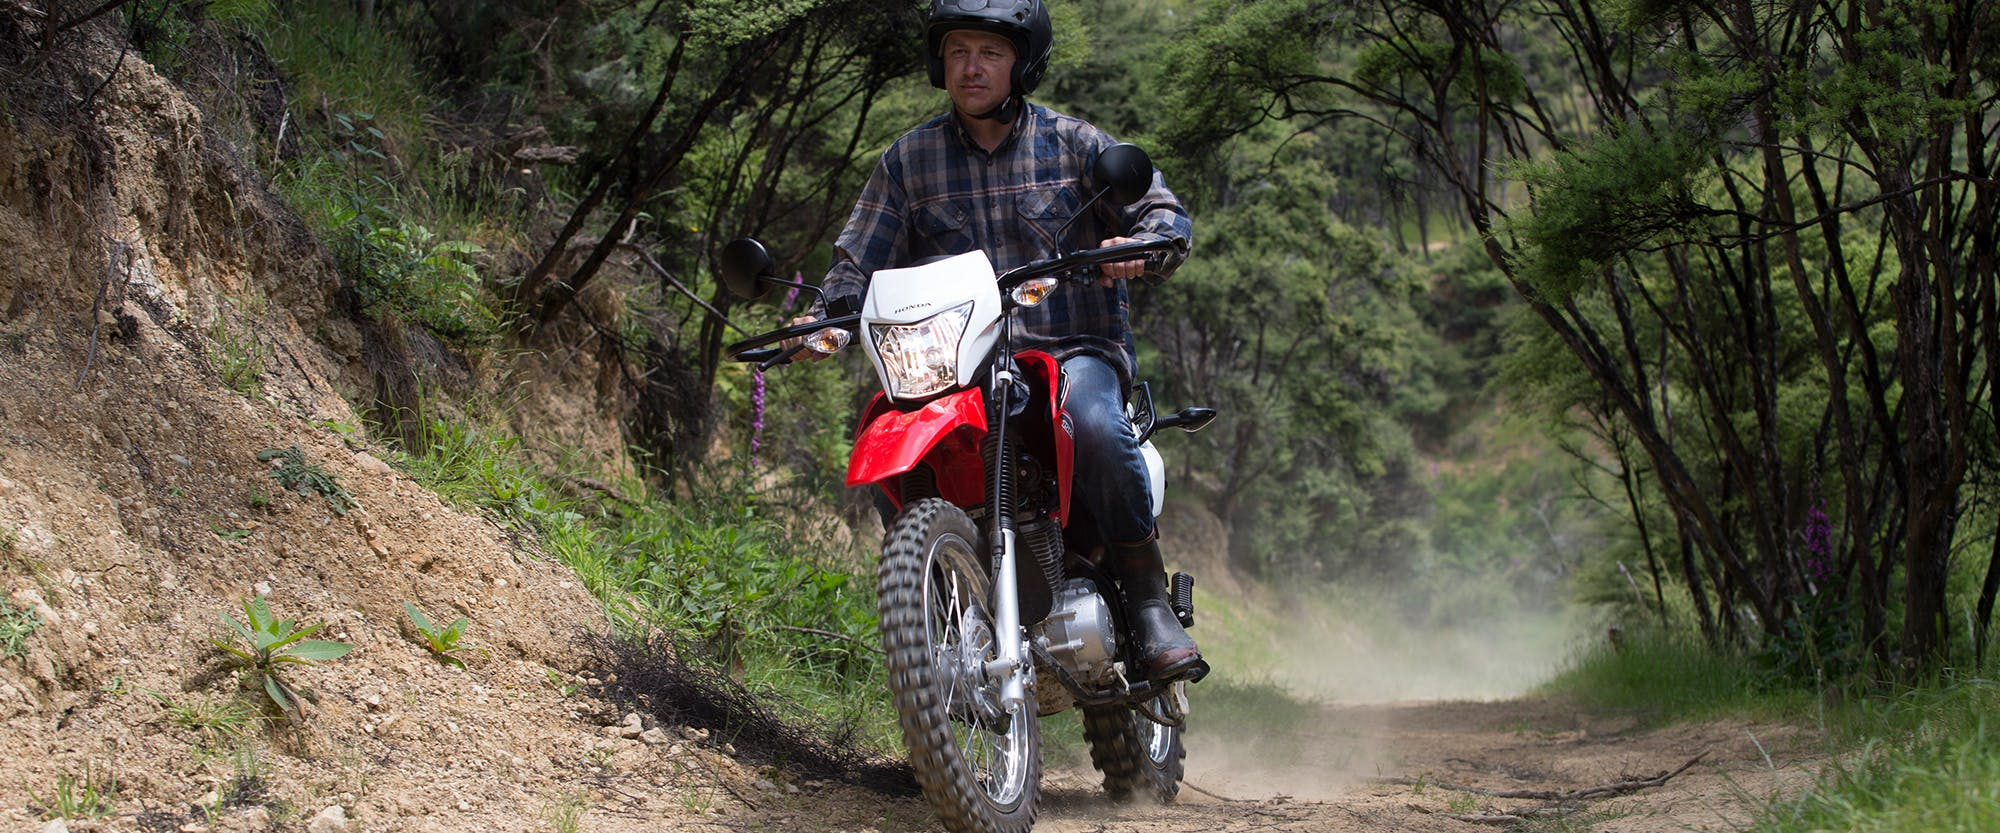 Honda XR150L in fighting red colour being ridden on off-road track